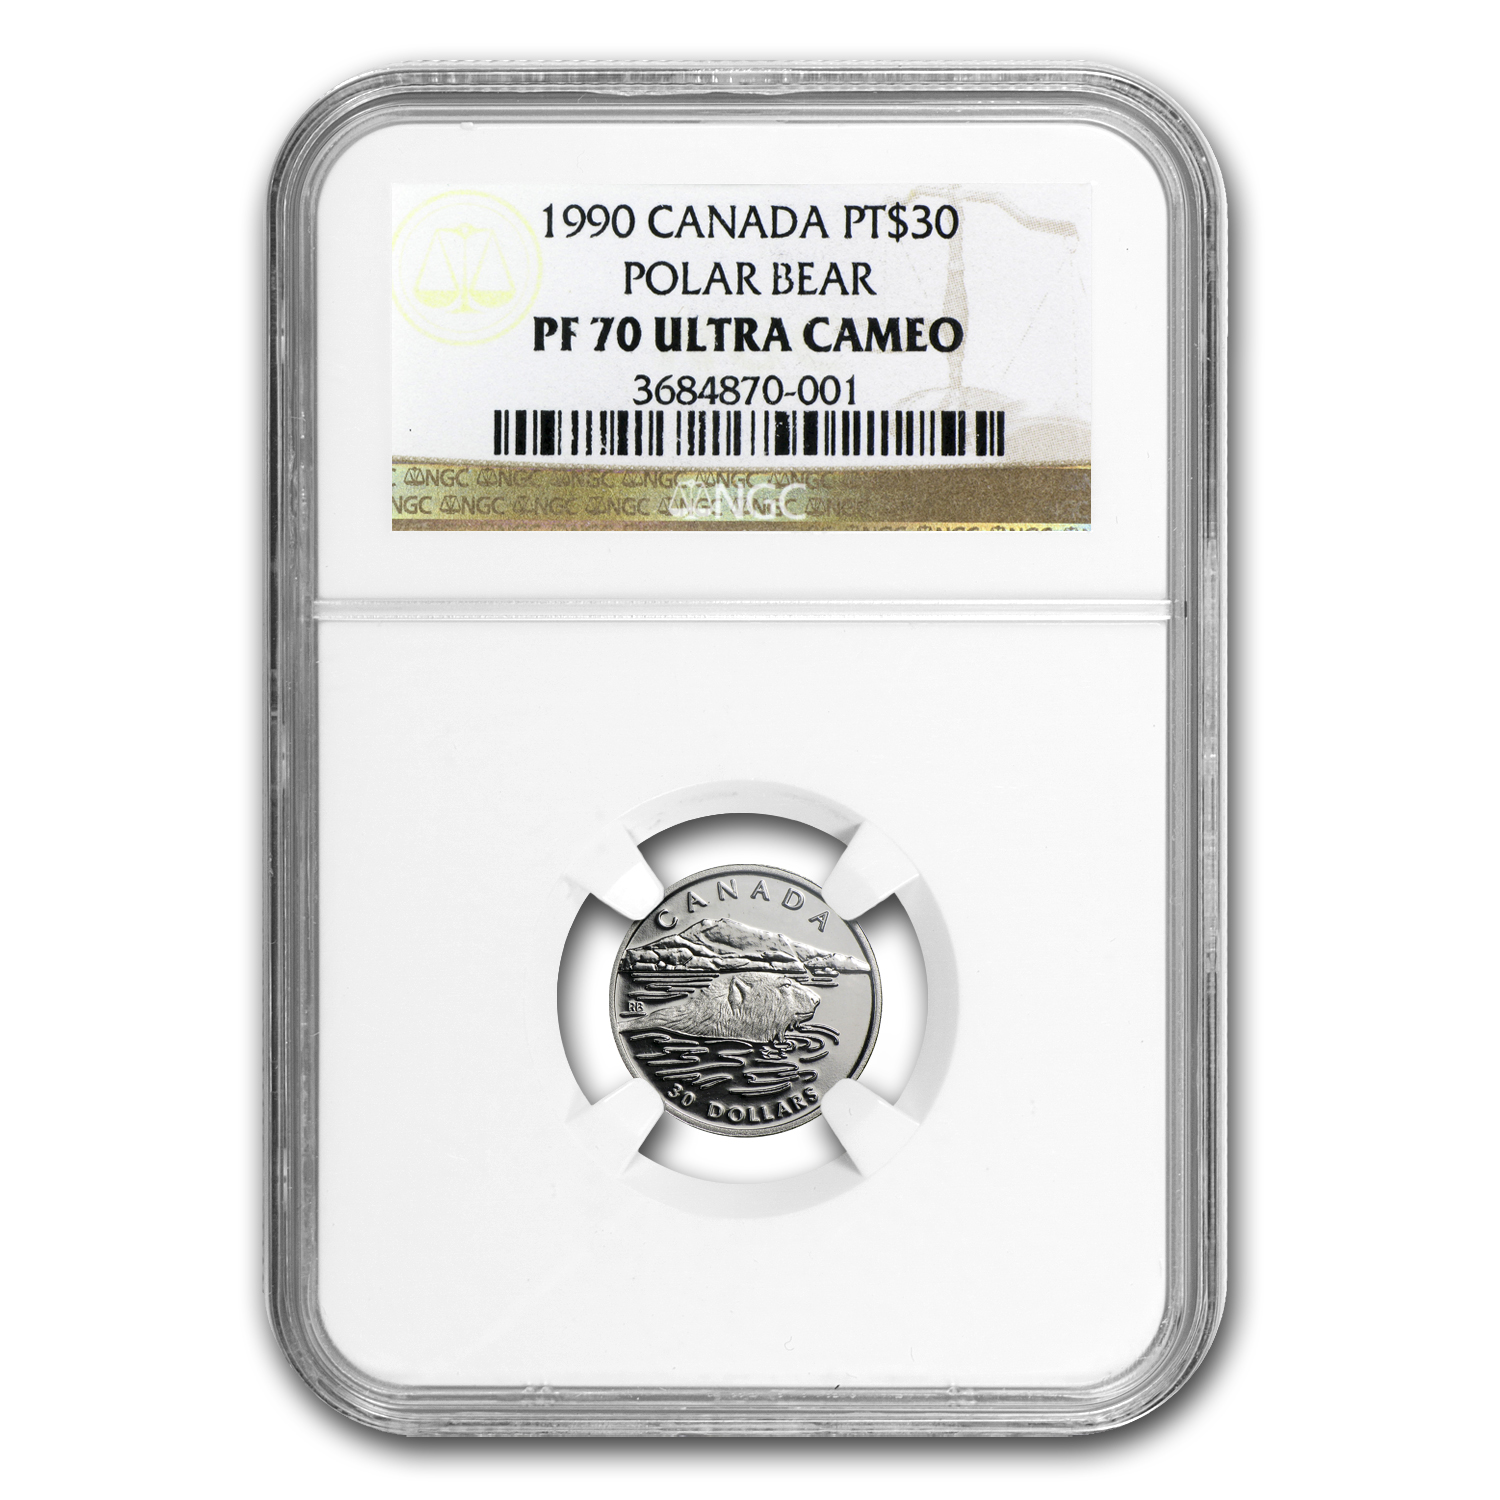 1990 Canada 1/10 oz Proof Platinum Polar Bear PF-70 NGC